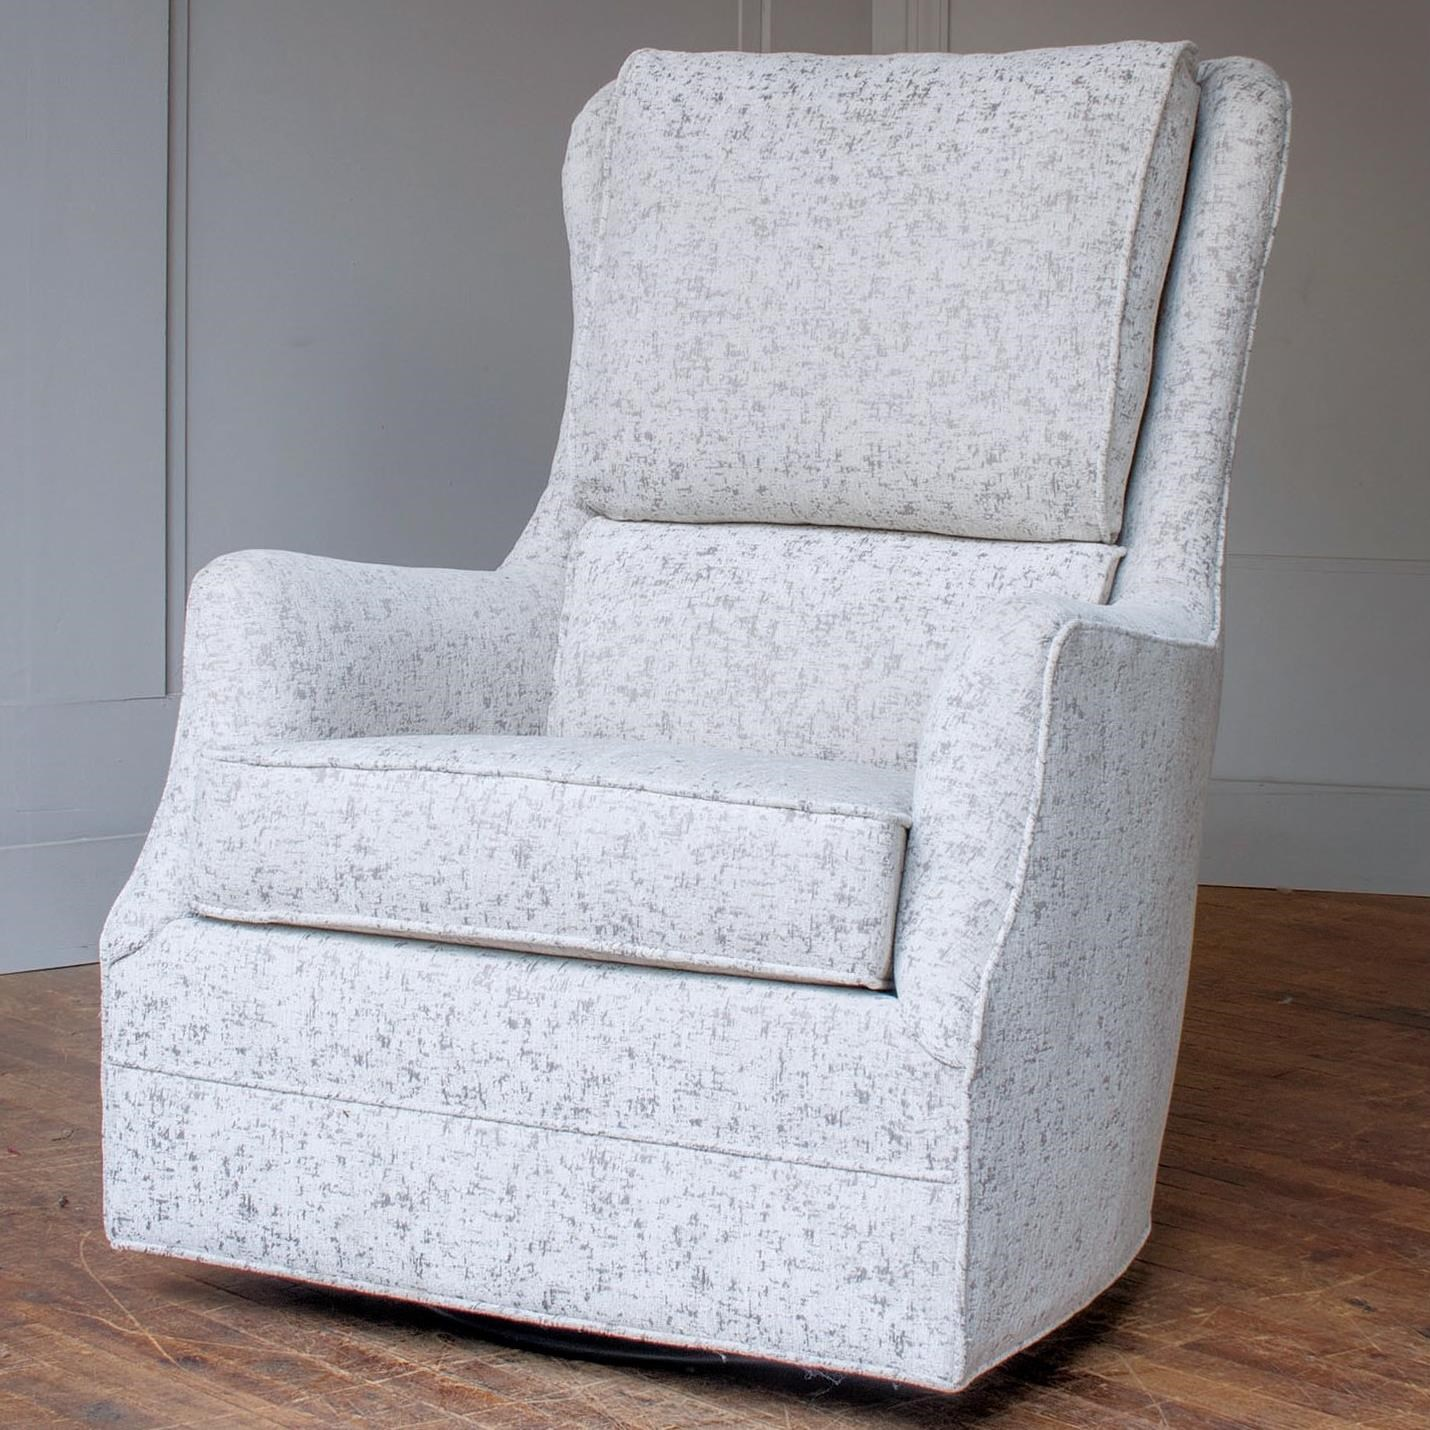 Accent Chairs Customizable Swivel Glider Accent Chair at Bennett's Furniture and Mattresses